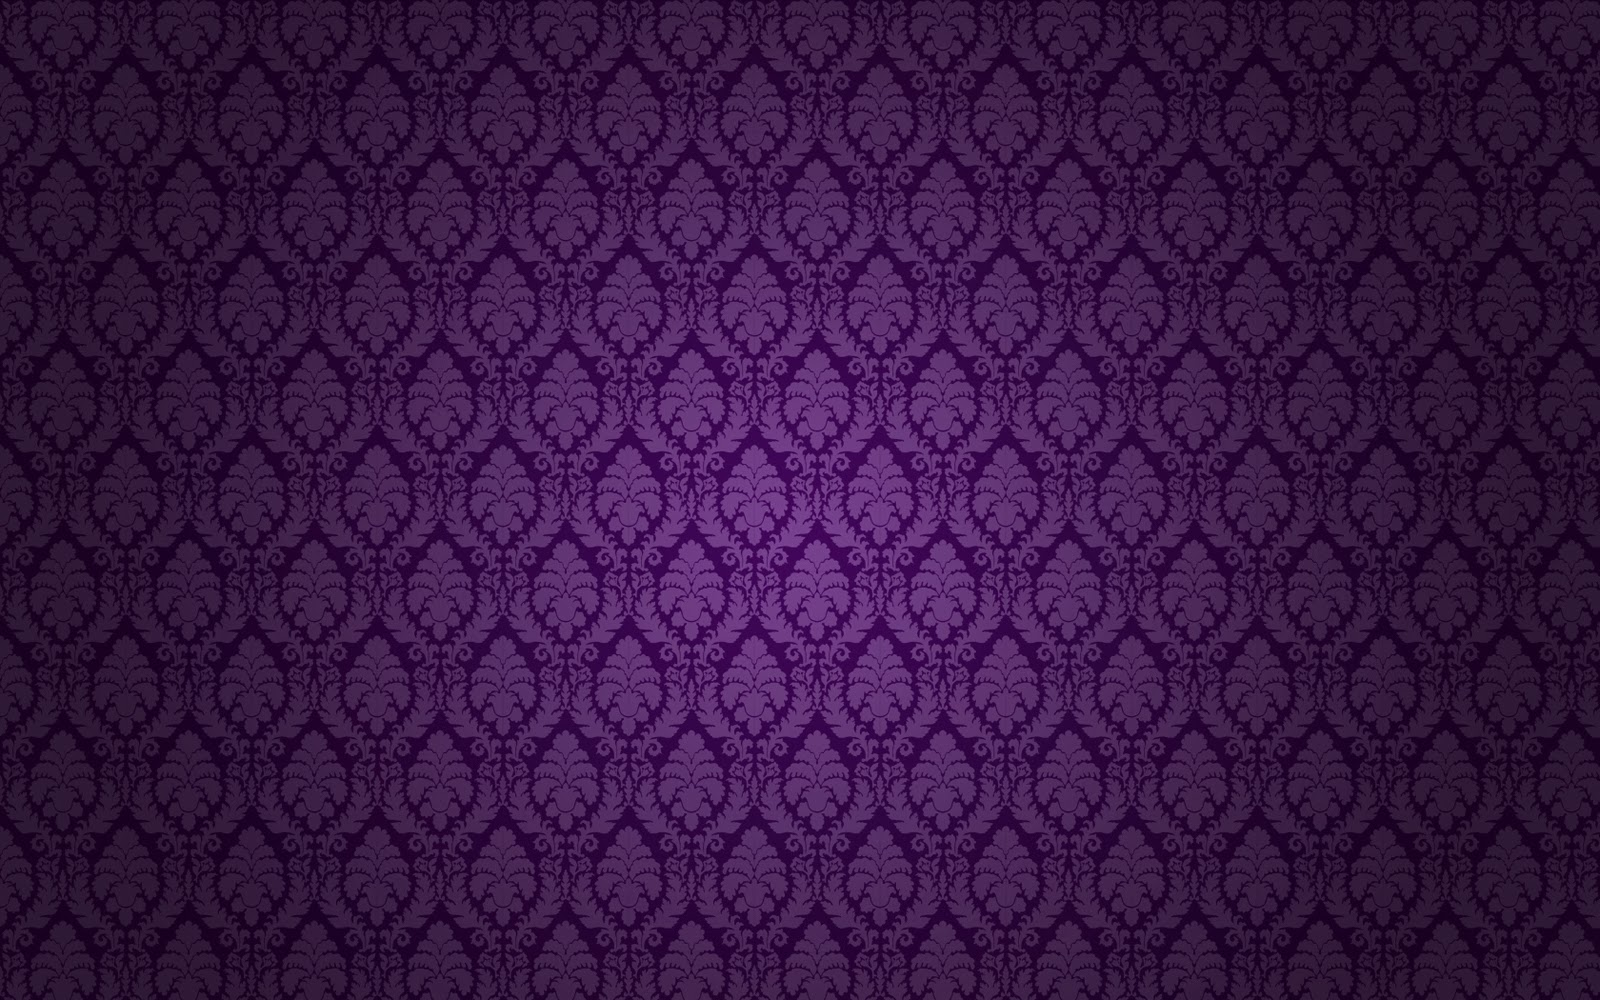 Hd Wallpapers Desktop Purple Background Hd Desktop Wallpapers